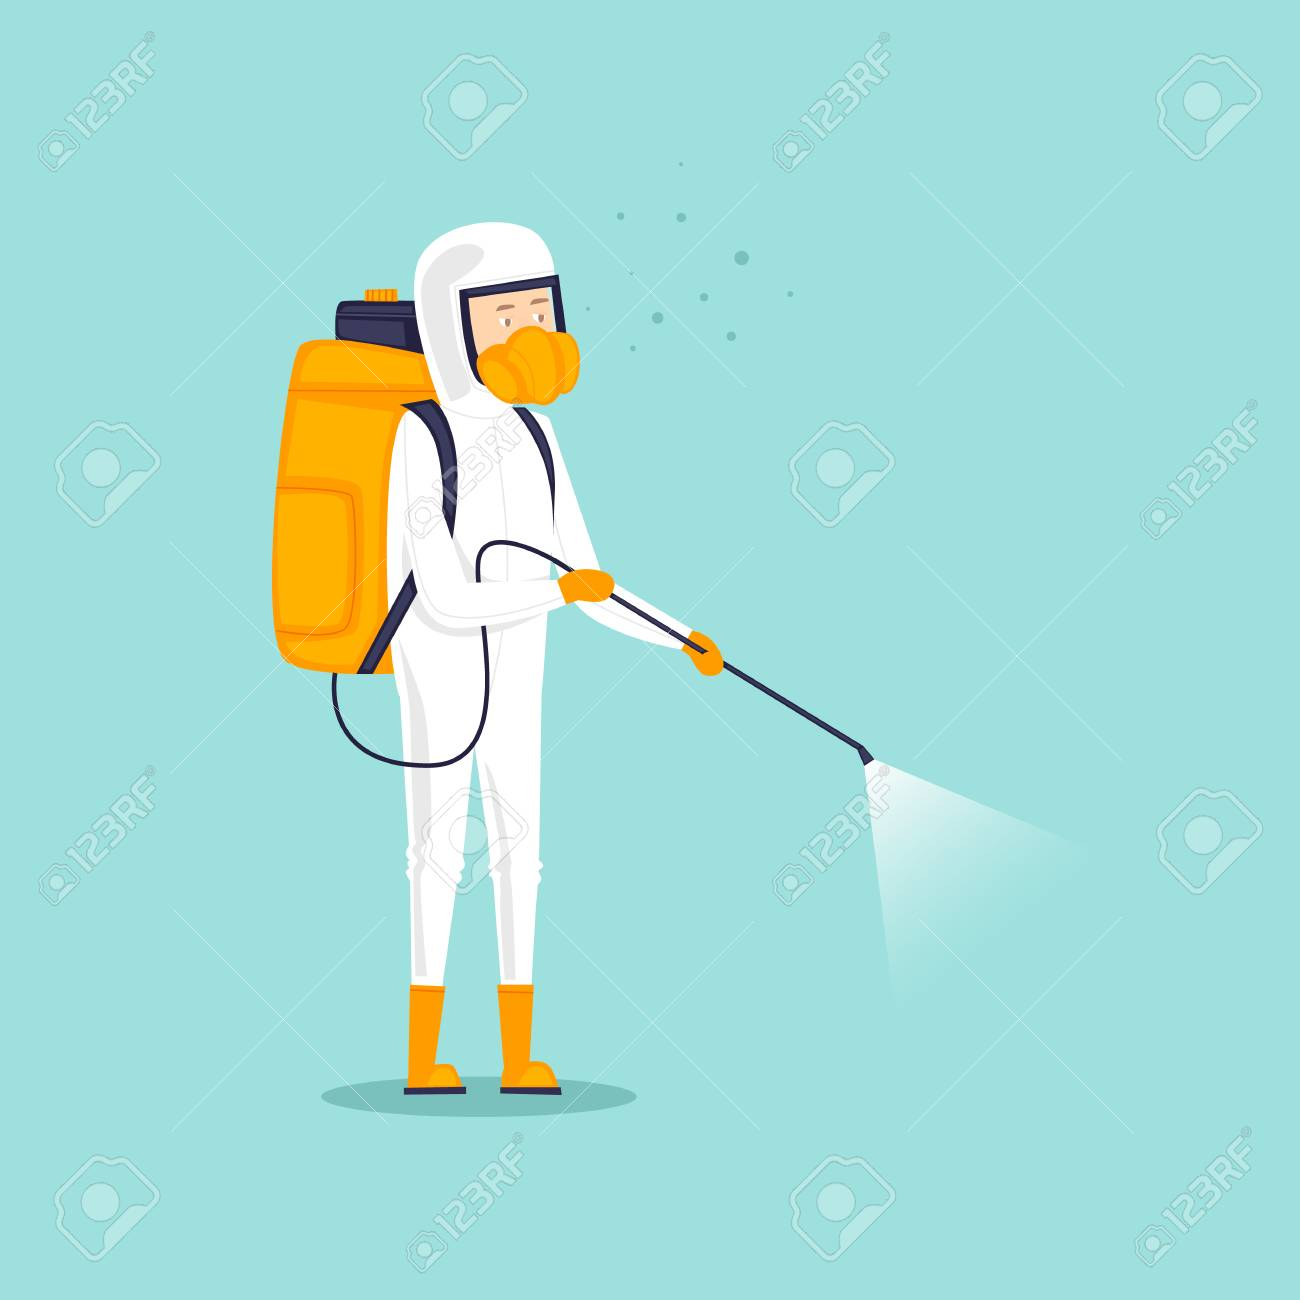 Chemical treatment insects. Man in uniform with face mask spray pesticides. Flat design vector illustration. - 91810534